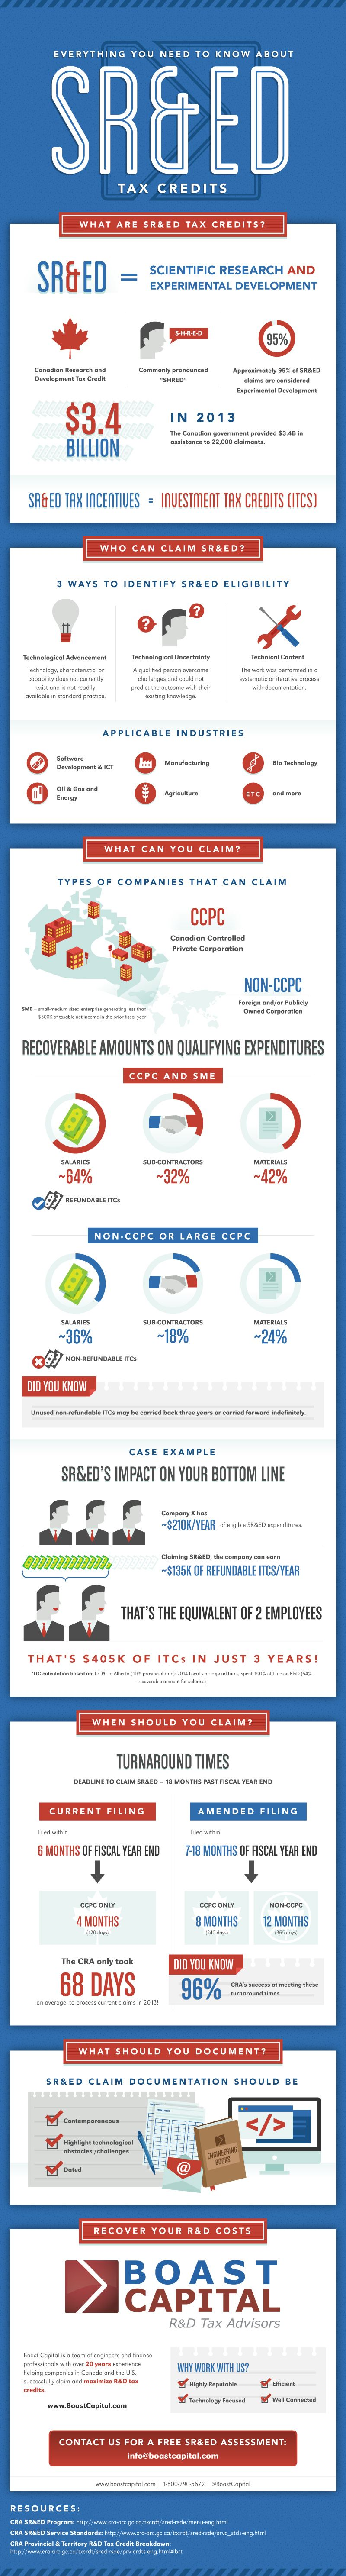 Boast Capital SRED Infographic